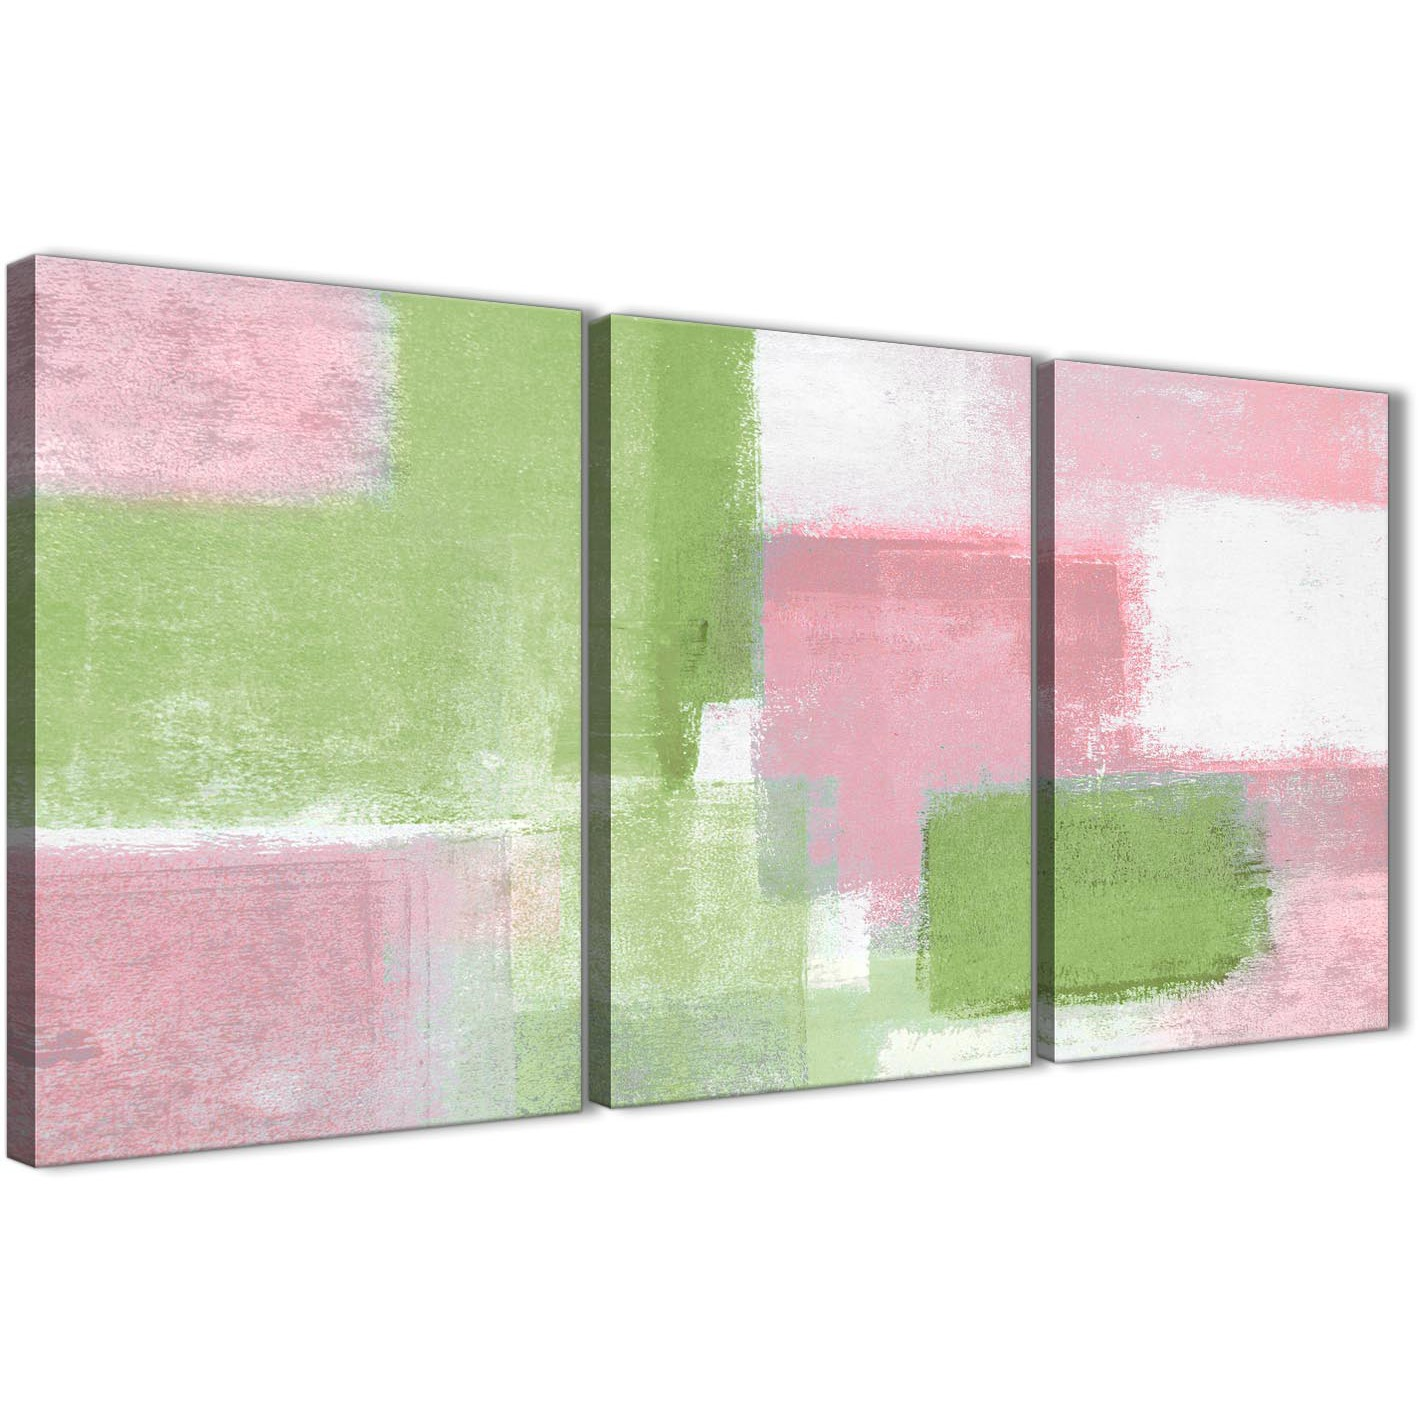 3 piece pink lime green dining room canvas wall art for 3 panel wall art